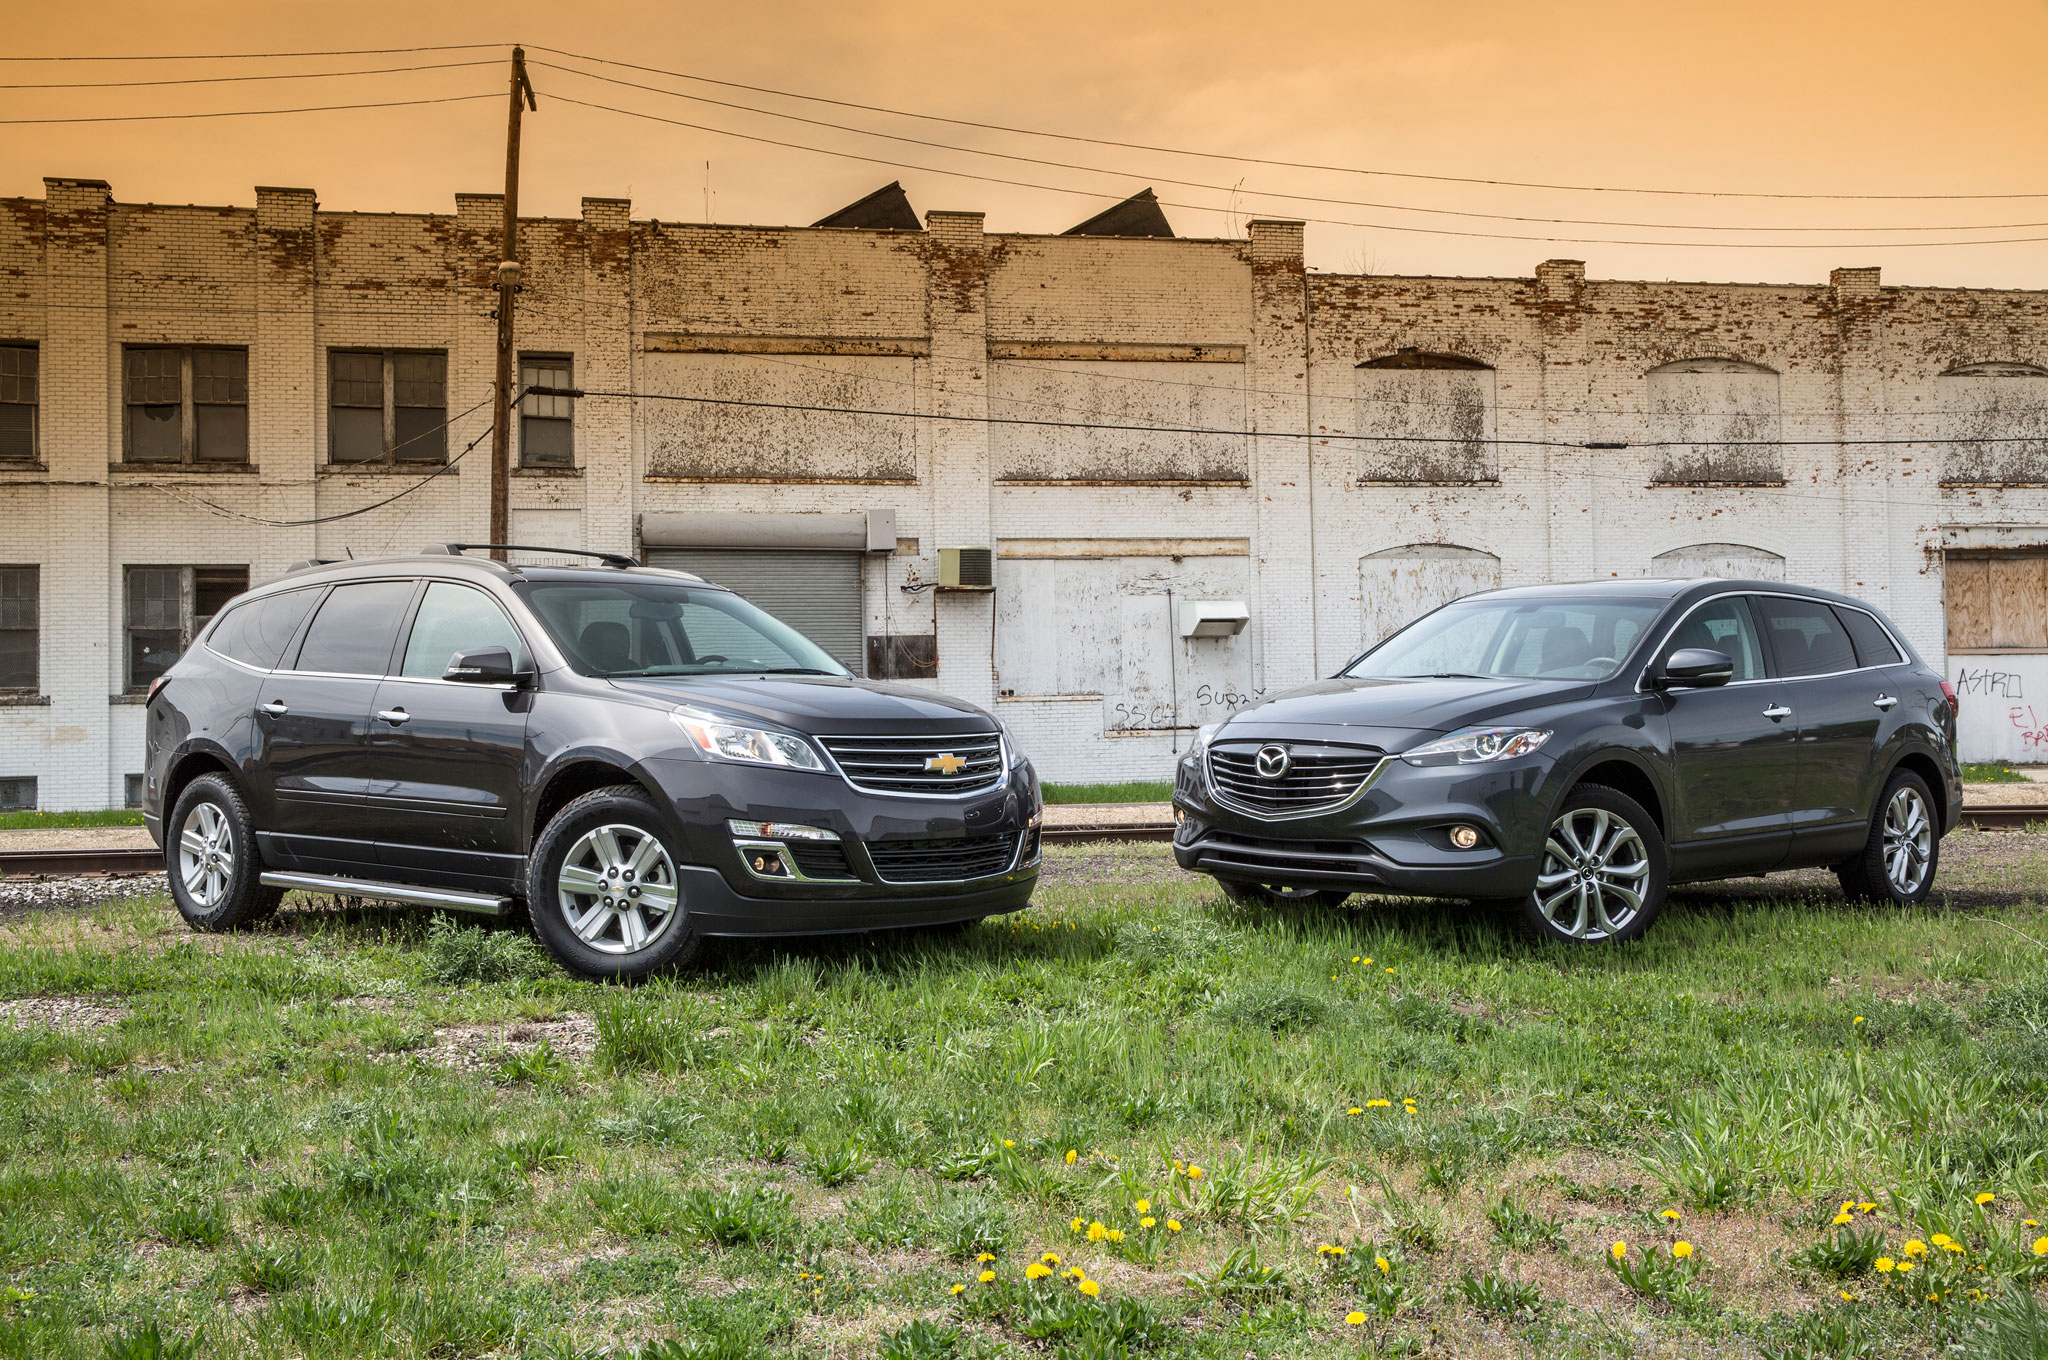 2013 Chevrolet Traverse AWD 2LT Vs 2013 Mazda CX 9 Front View